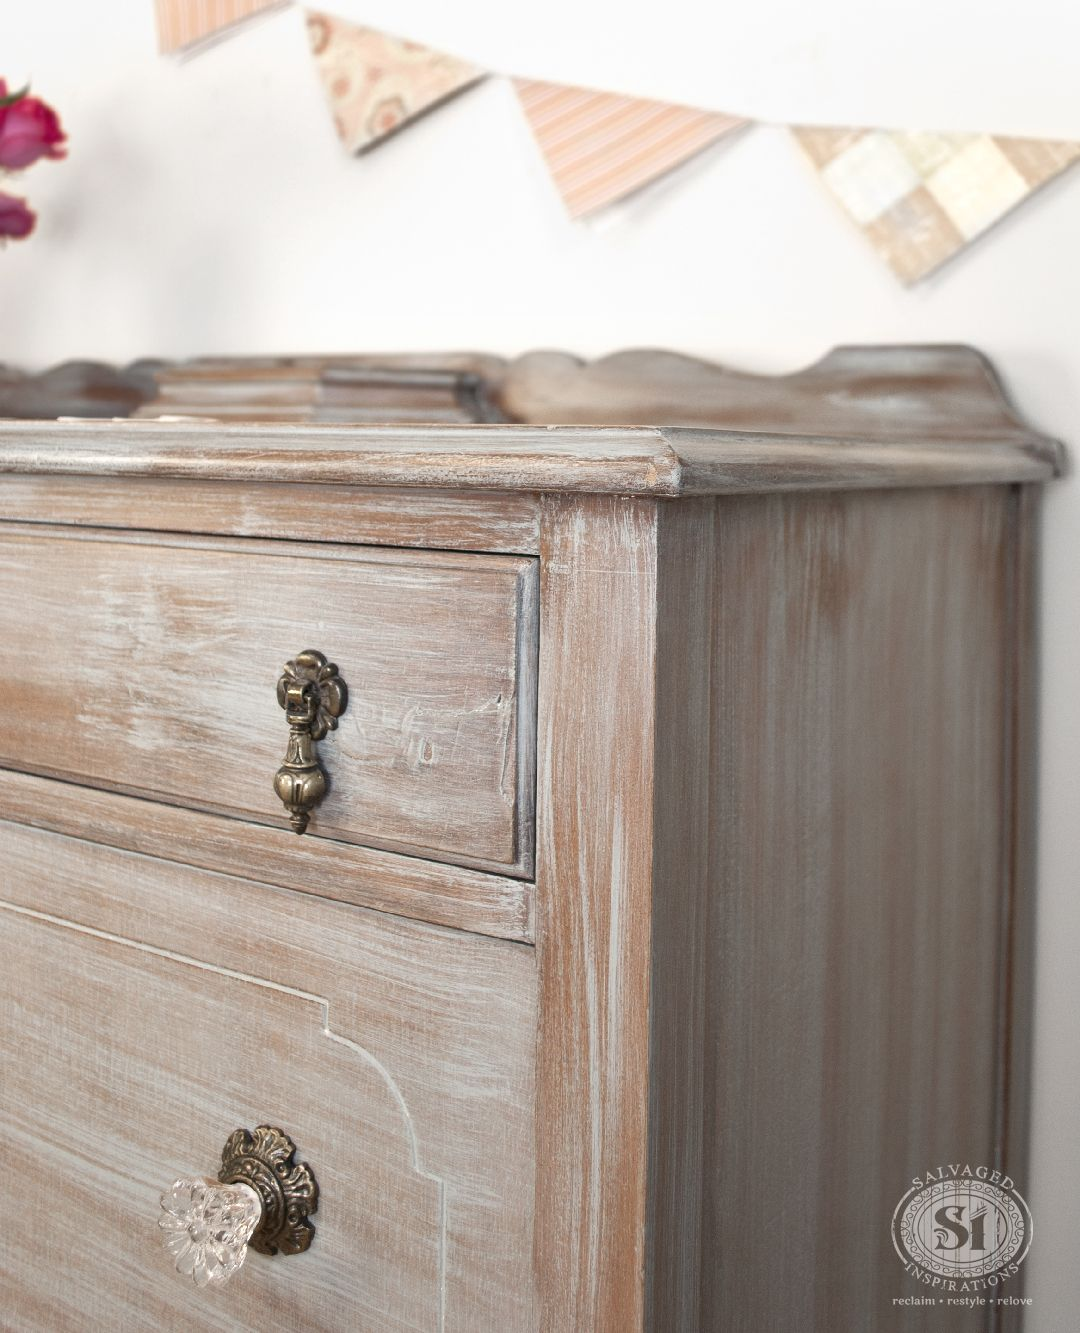 Are You A Fan Of Washing And Dry Brushing Furniture